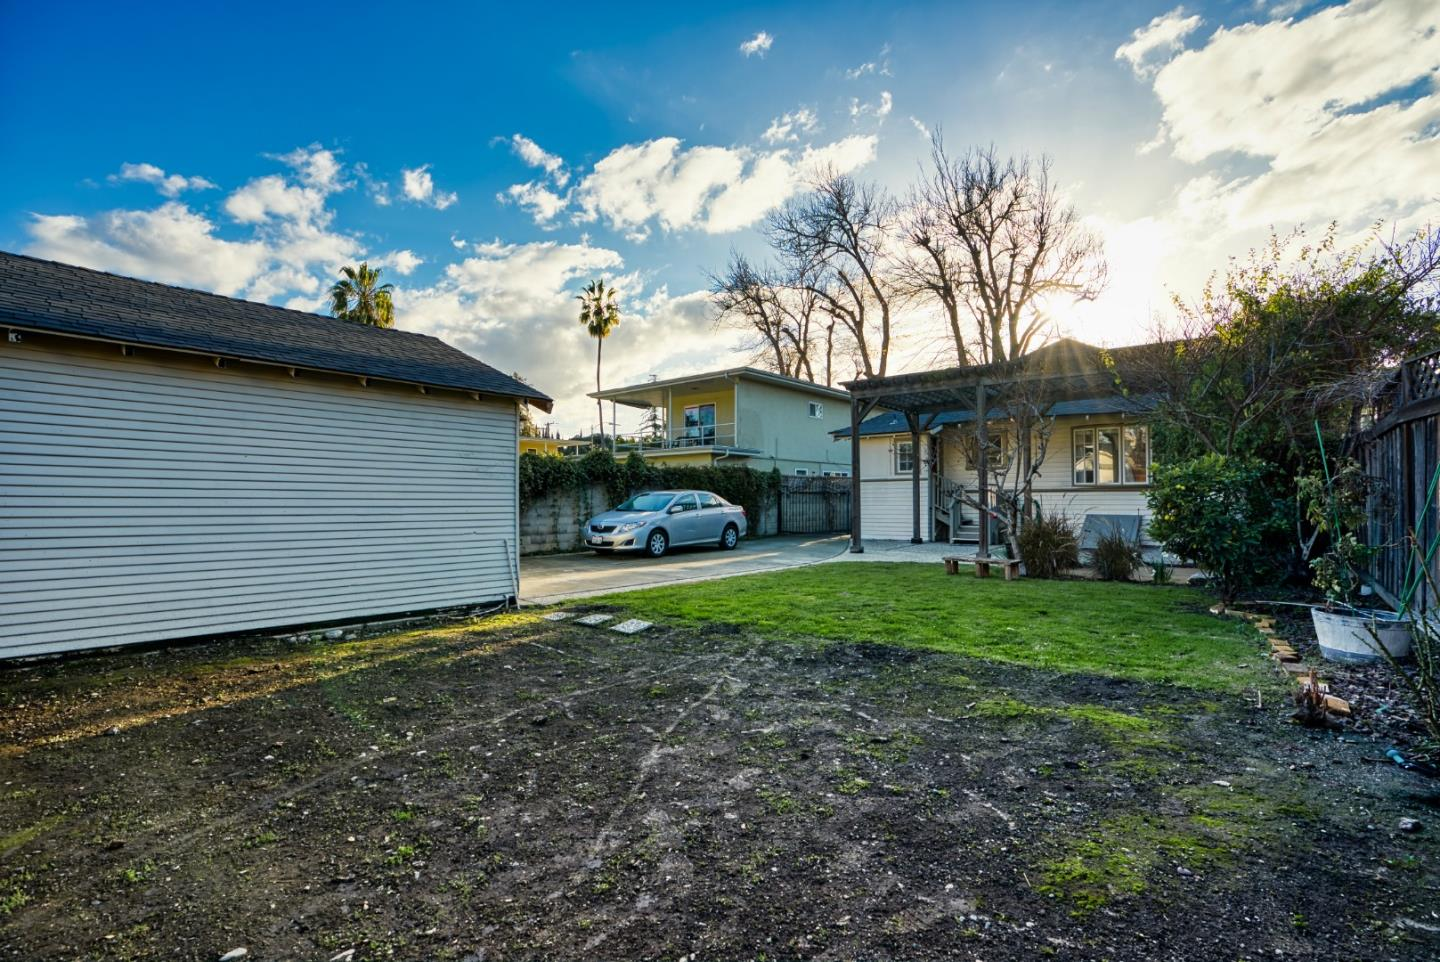 544 So 8th Street San Jose, CA 95112 - MLS #: ML81734894